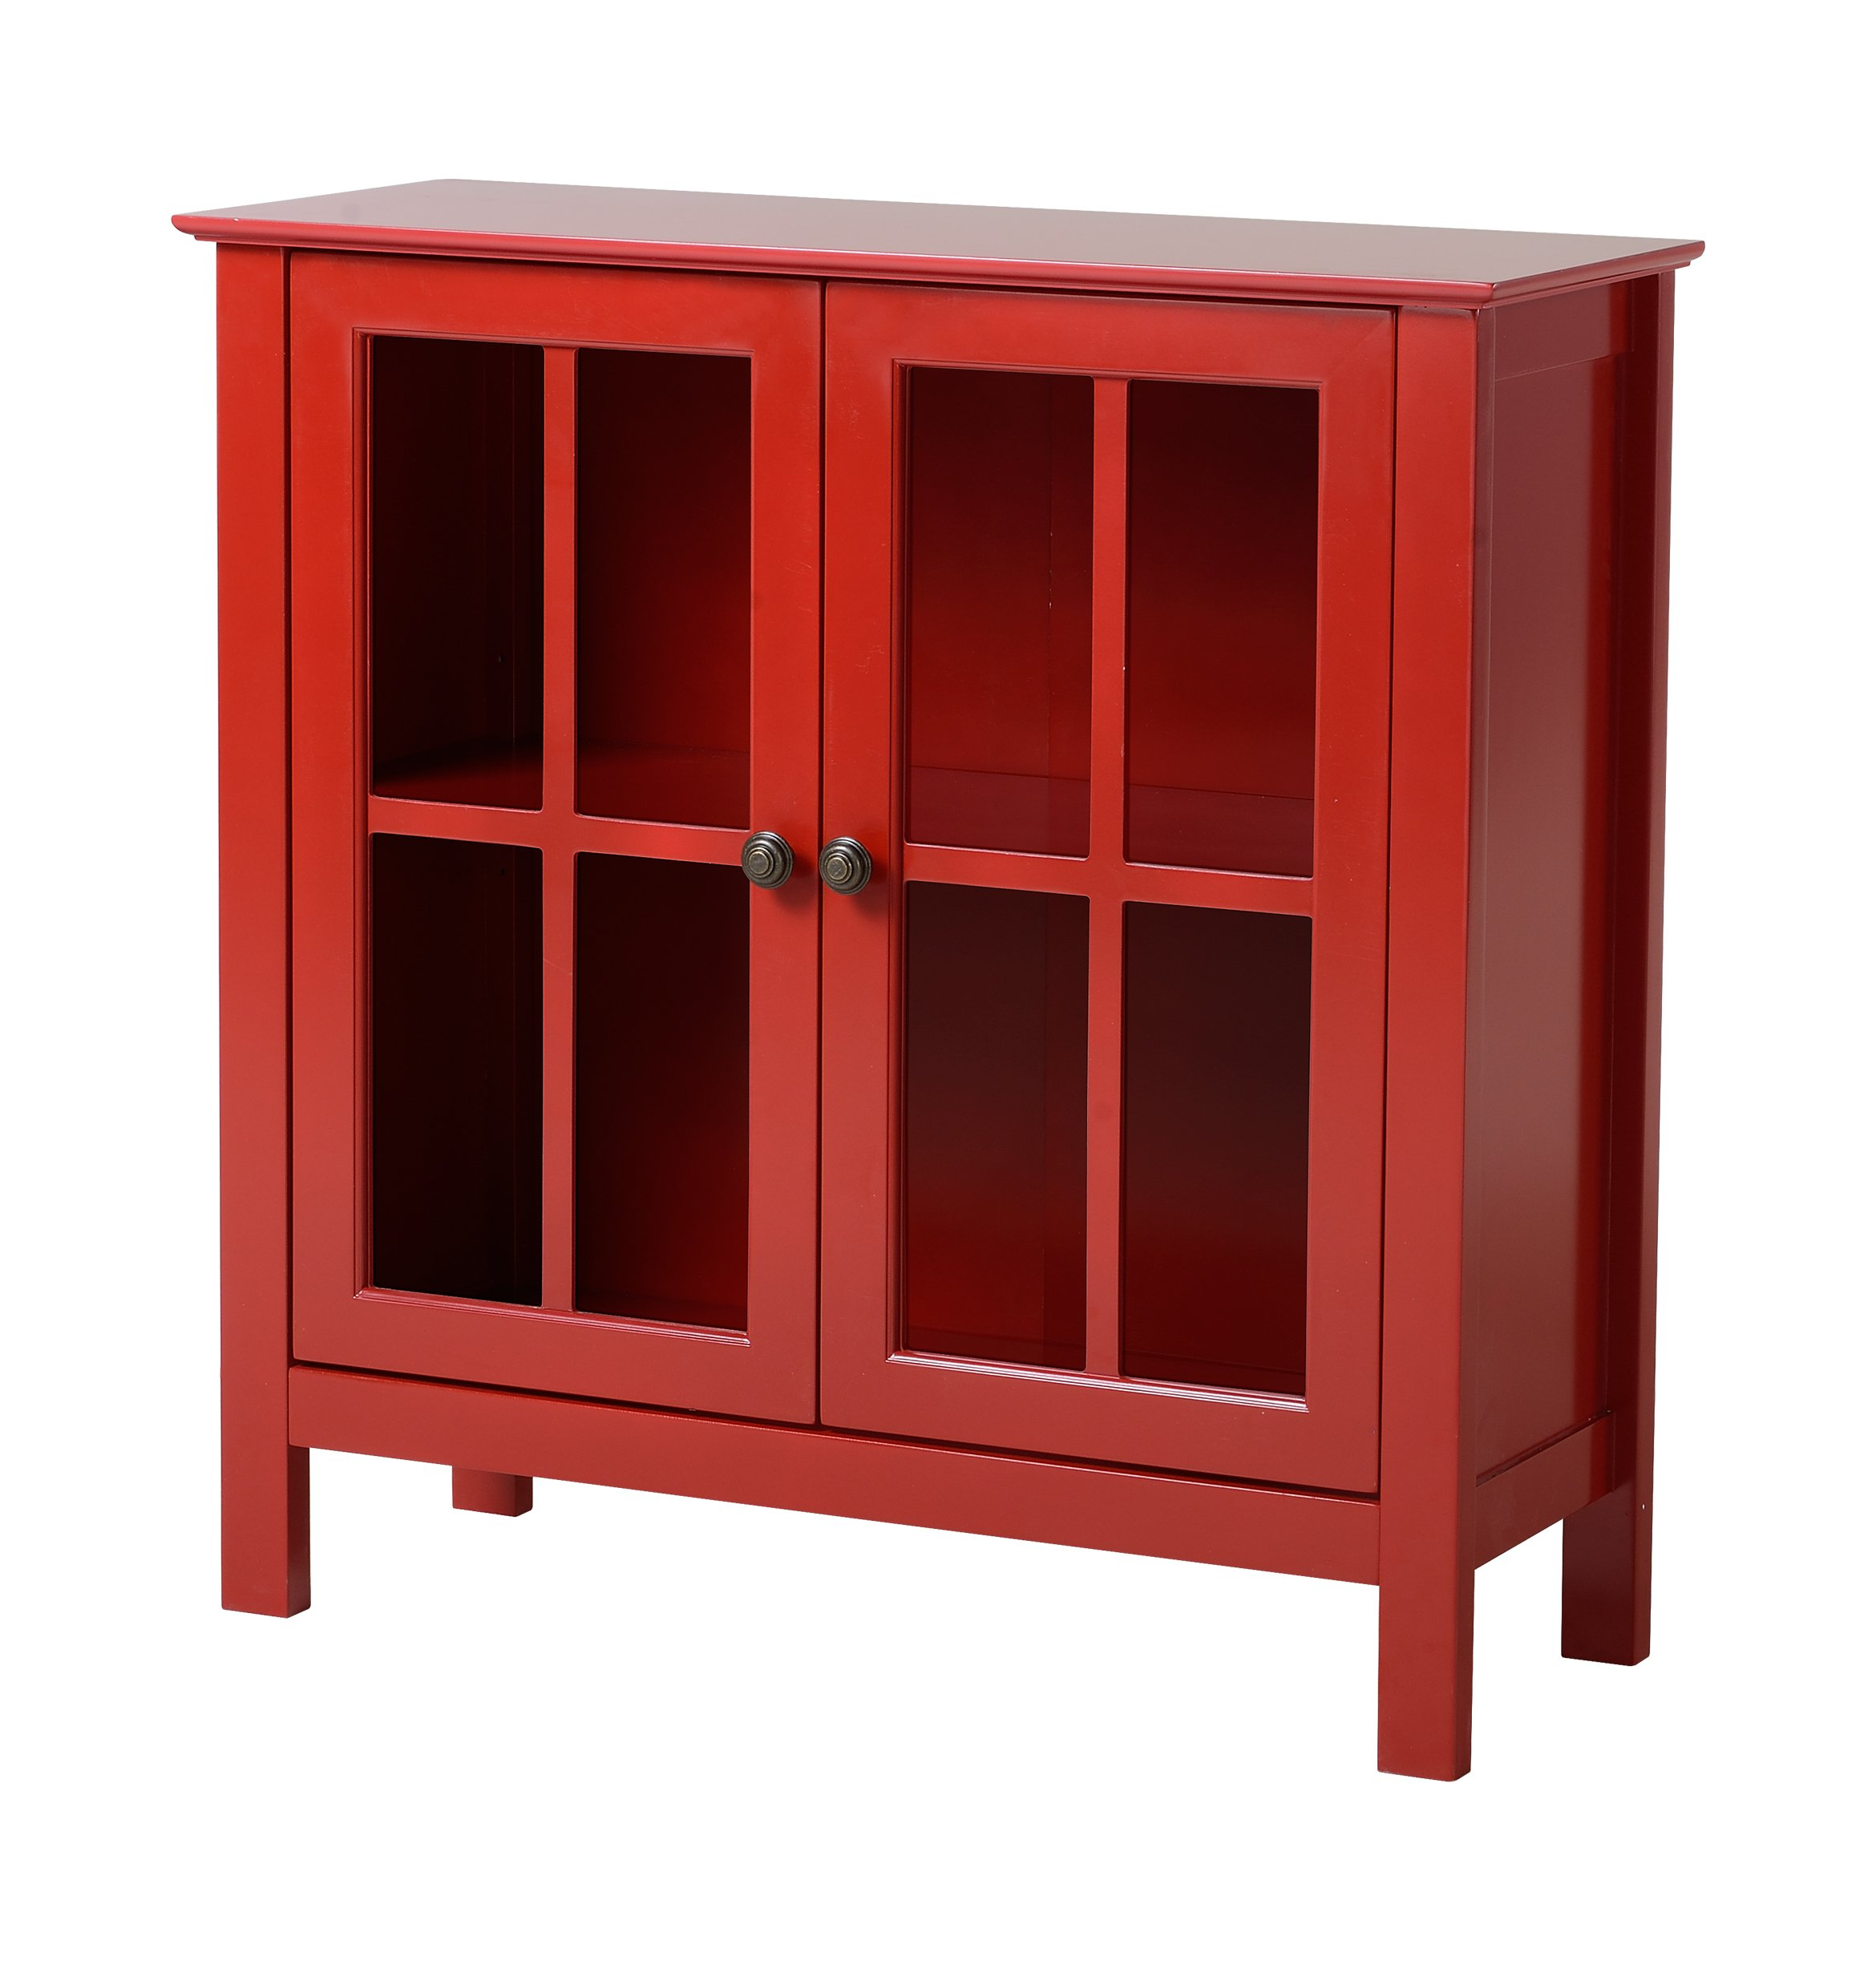 American Furniture Classics OS Home and Office Glass Door Accent and Display Cabinet, Red Paint by American Furniture Classics